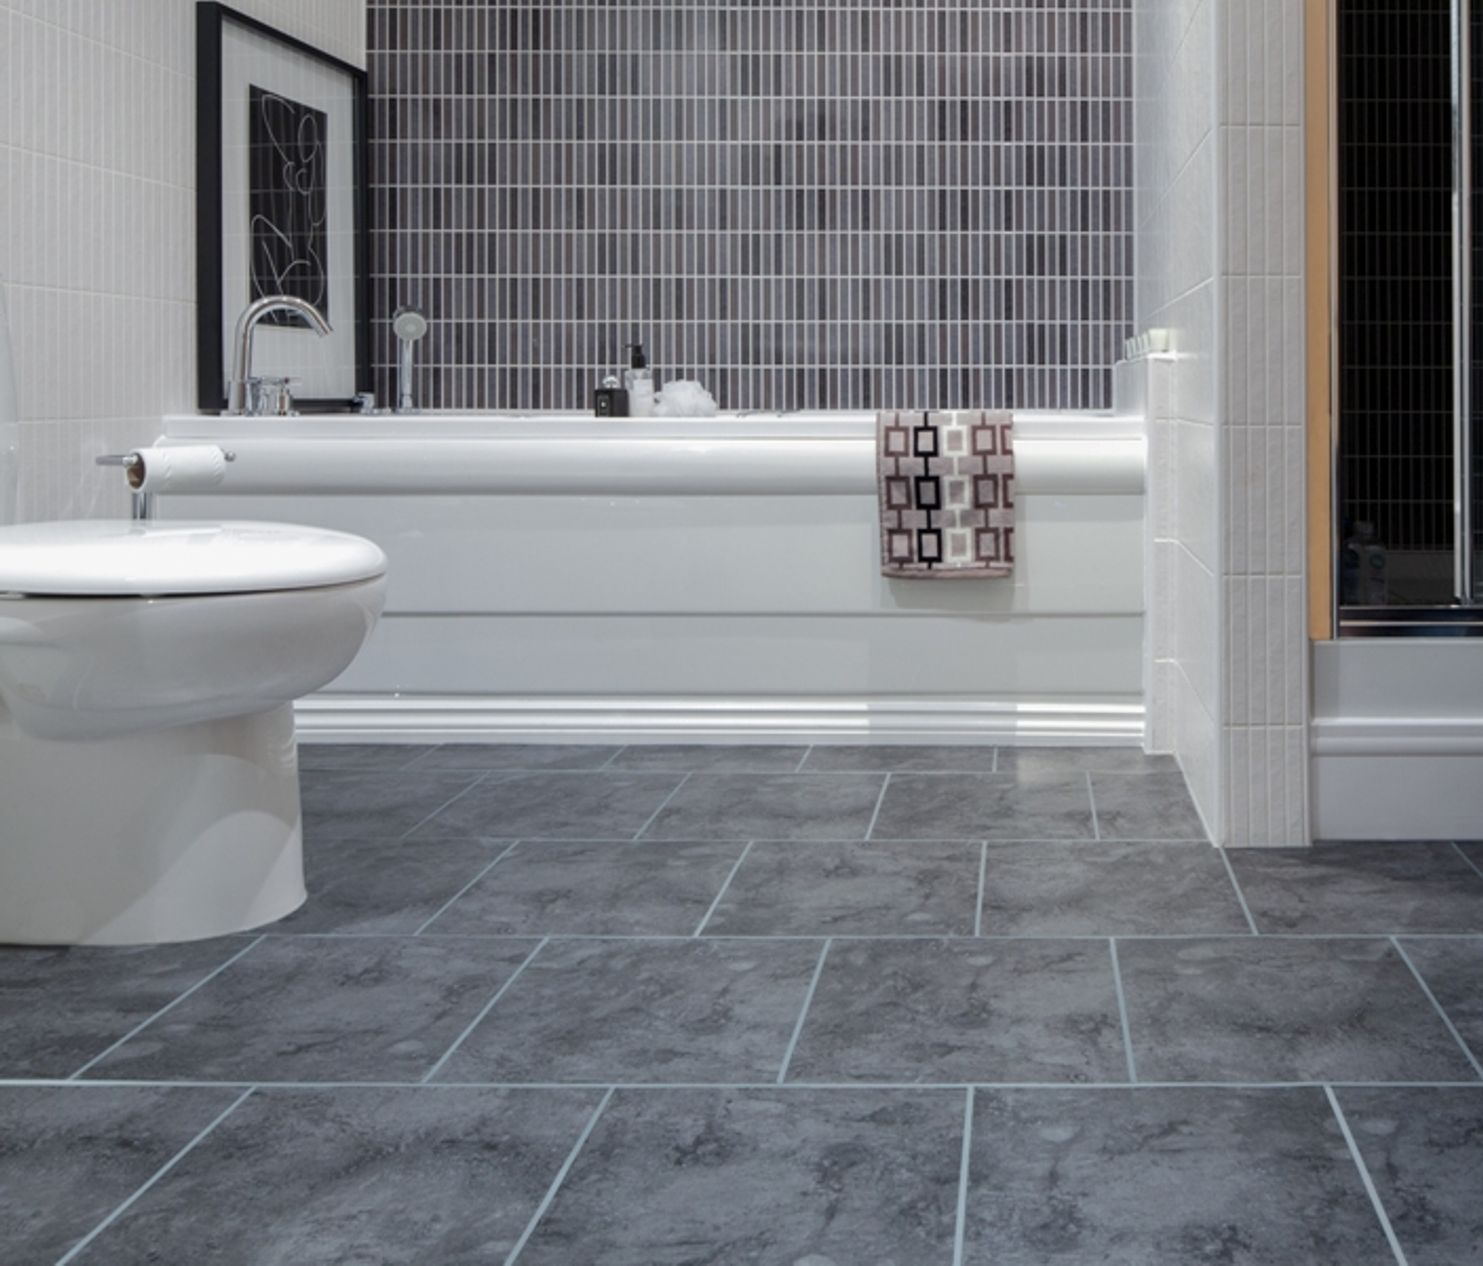 Prime 1 Mln Bathroom Tile Ideas Home Sweet Home Grey Bathroom Home Interior And Landscaping Ologienasavecom